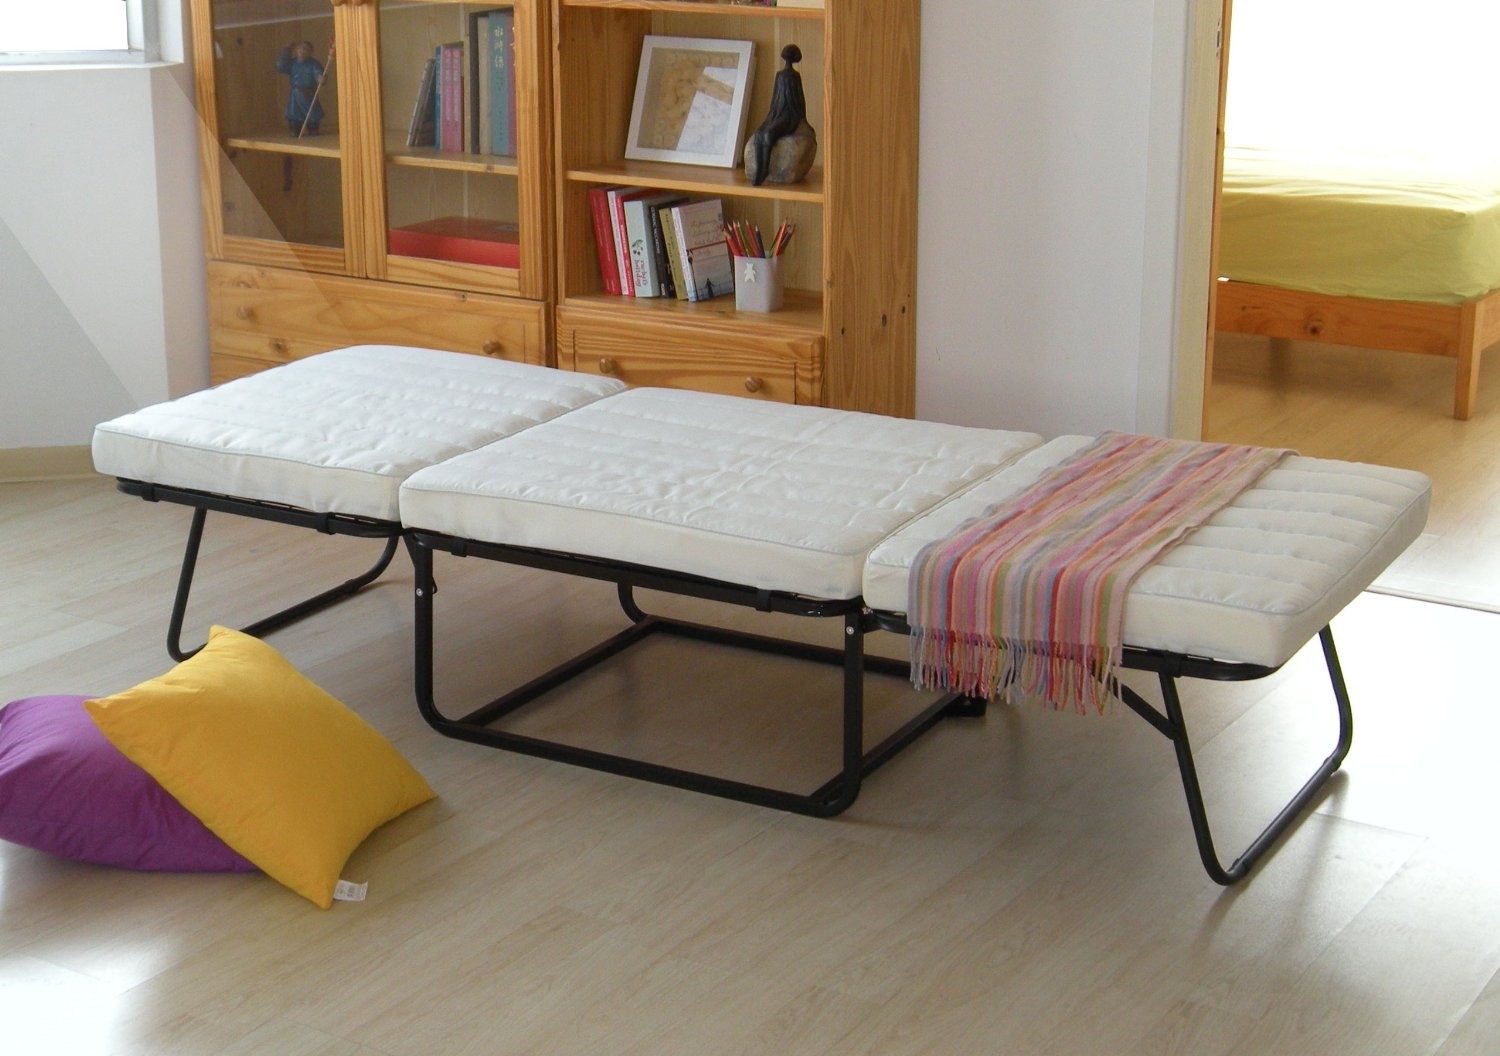 IKEA Guest Bed: Easy and Practical Way to Welcome Your Guest | HomesFeed